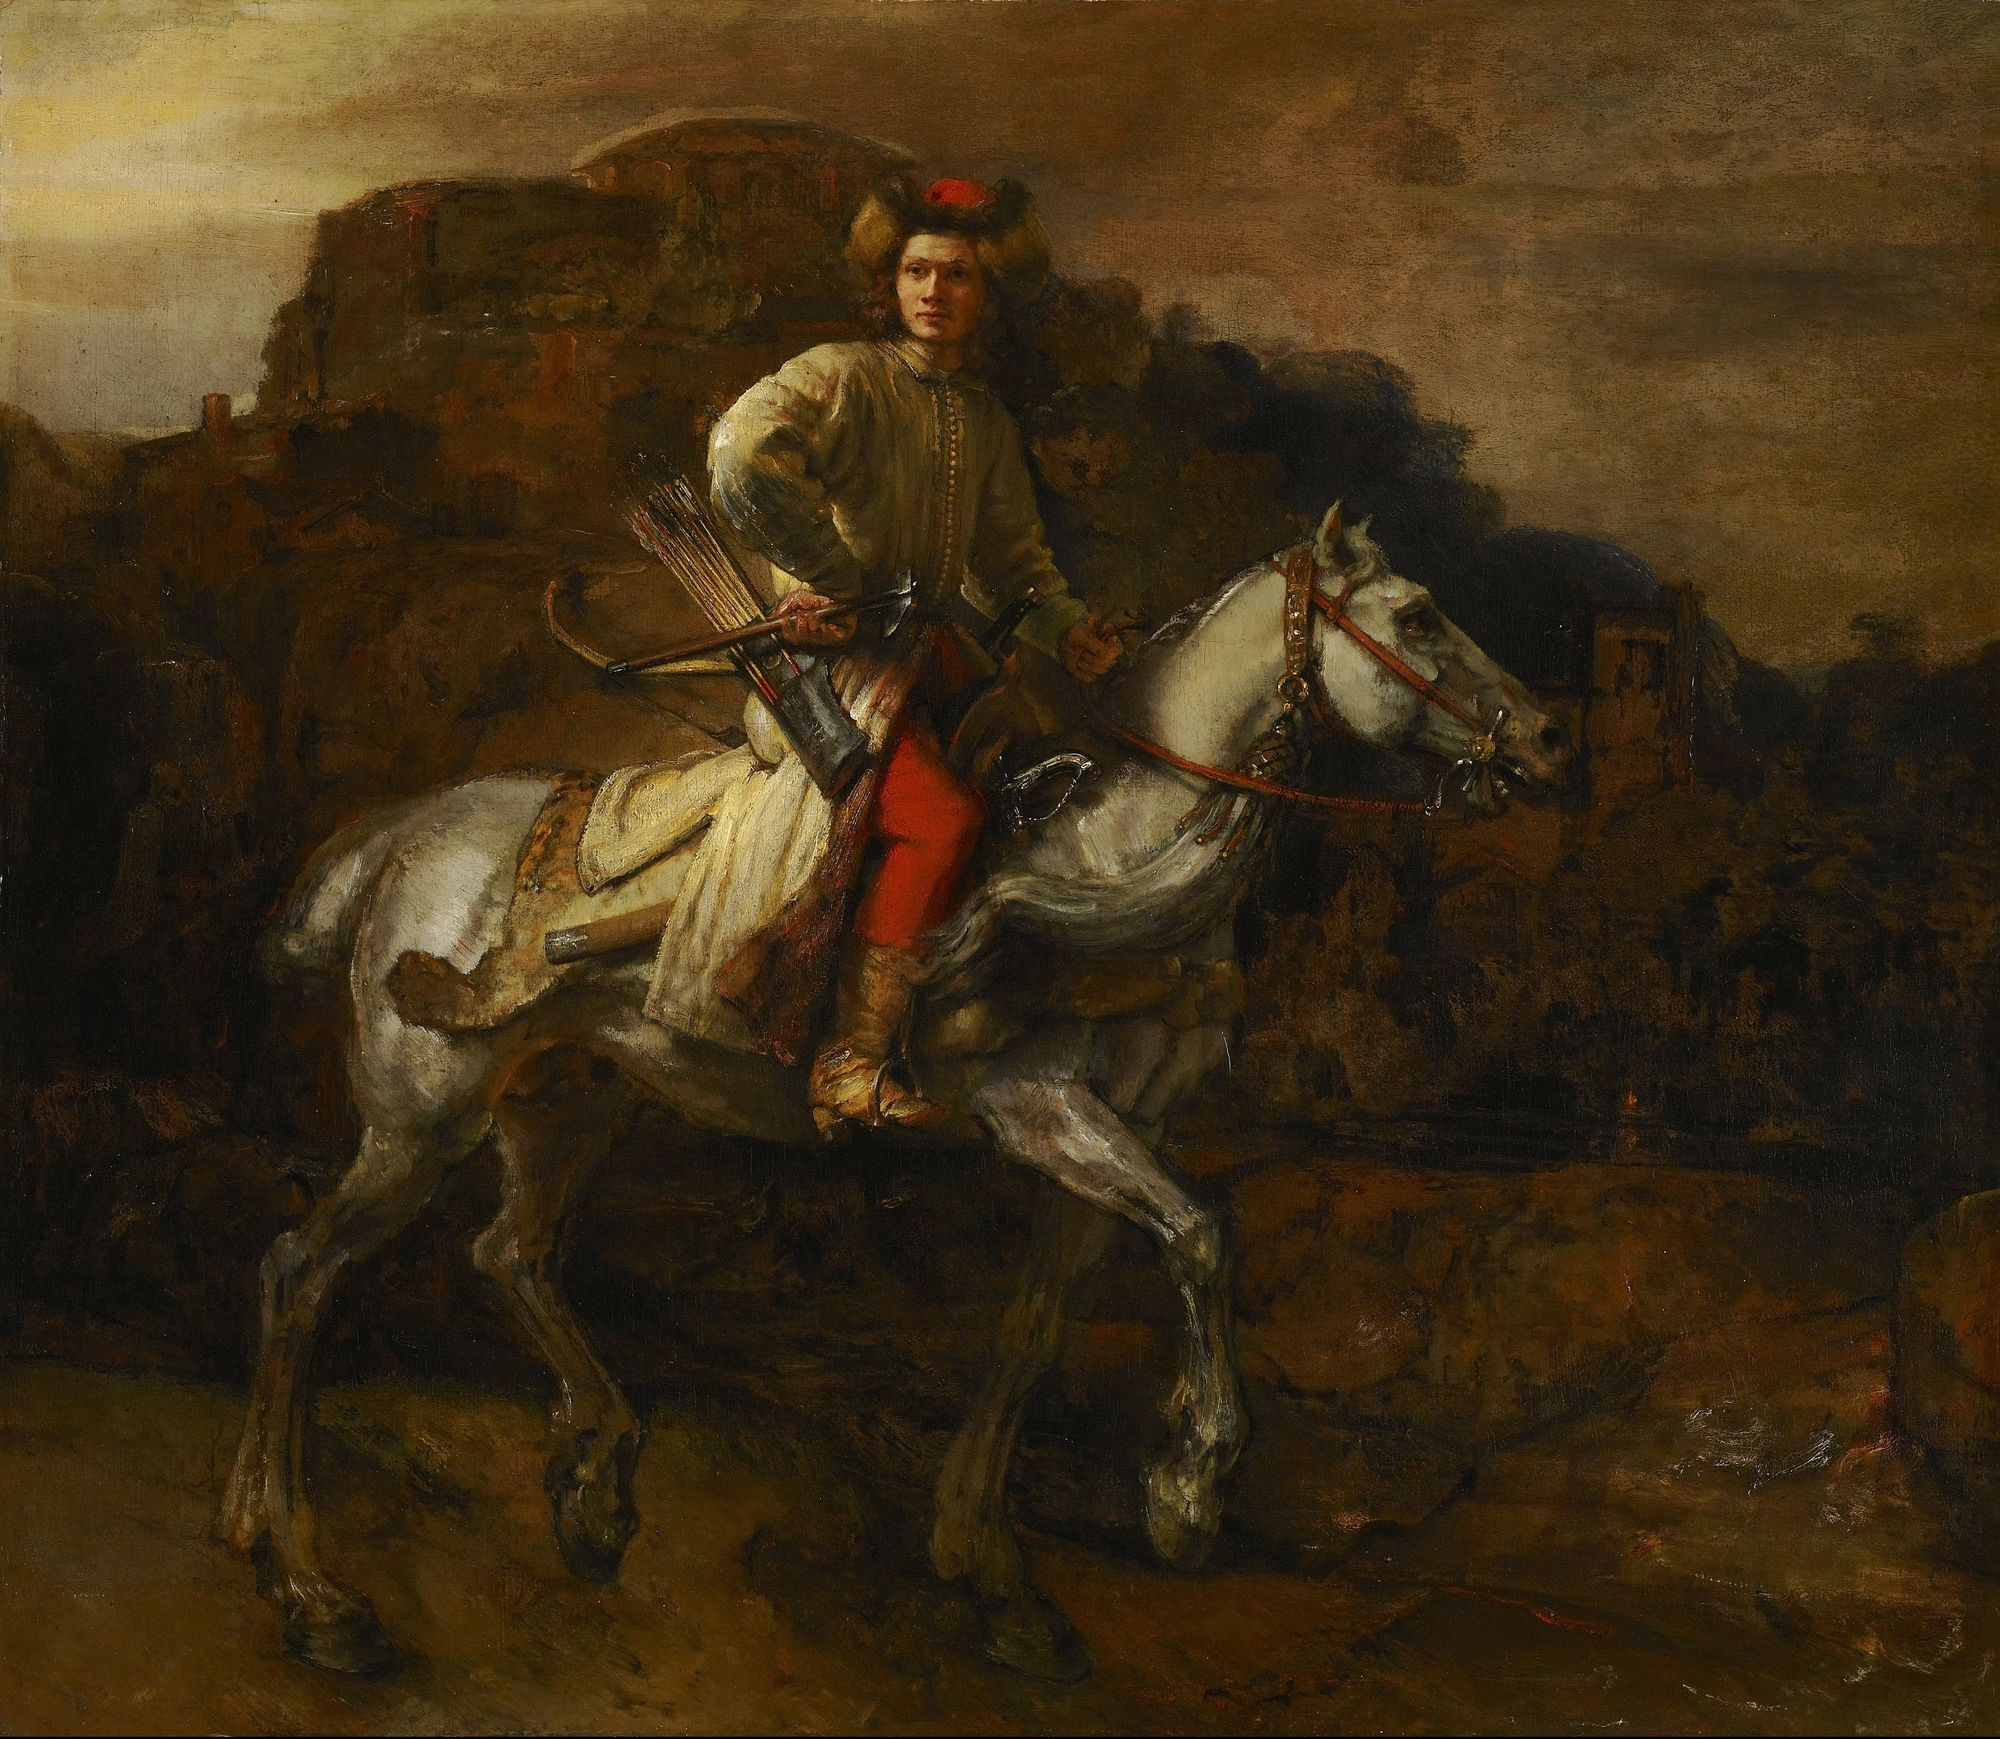 The Polish Rider, a painting attributed to Rembrandt